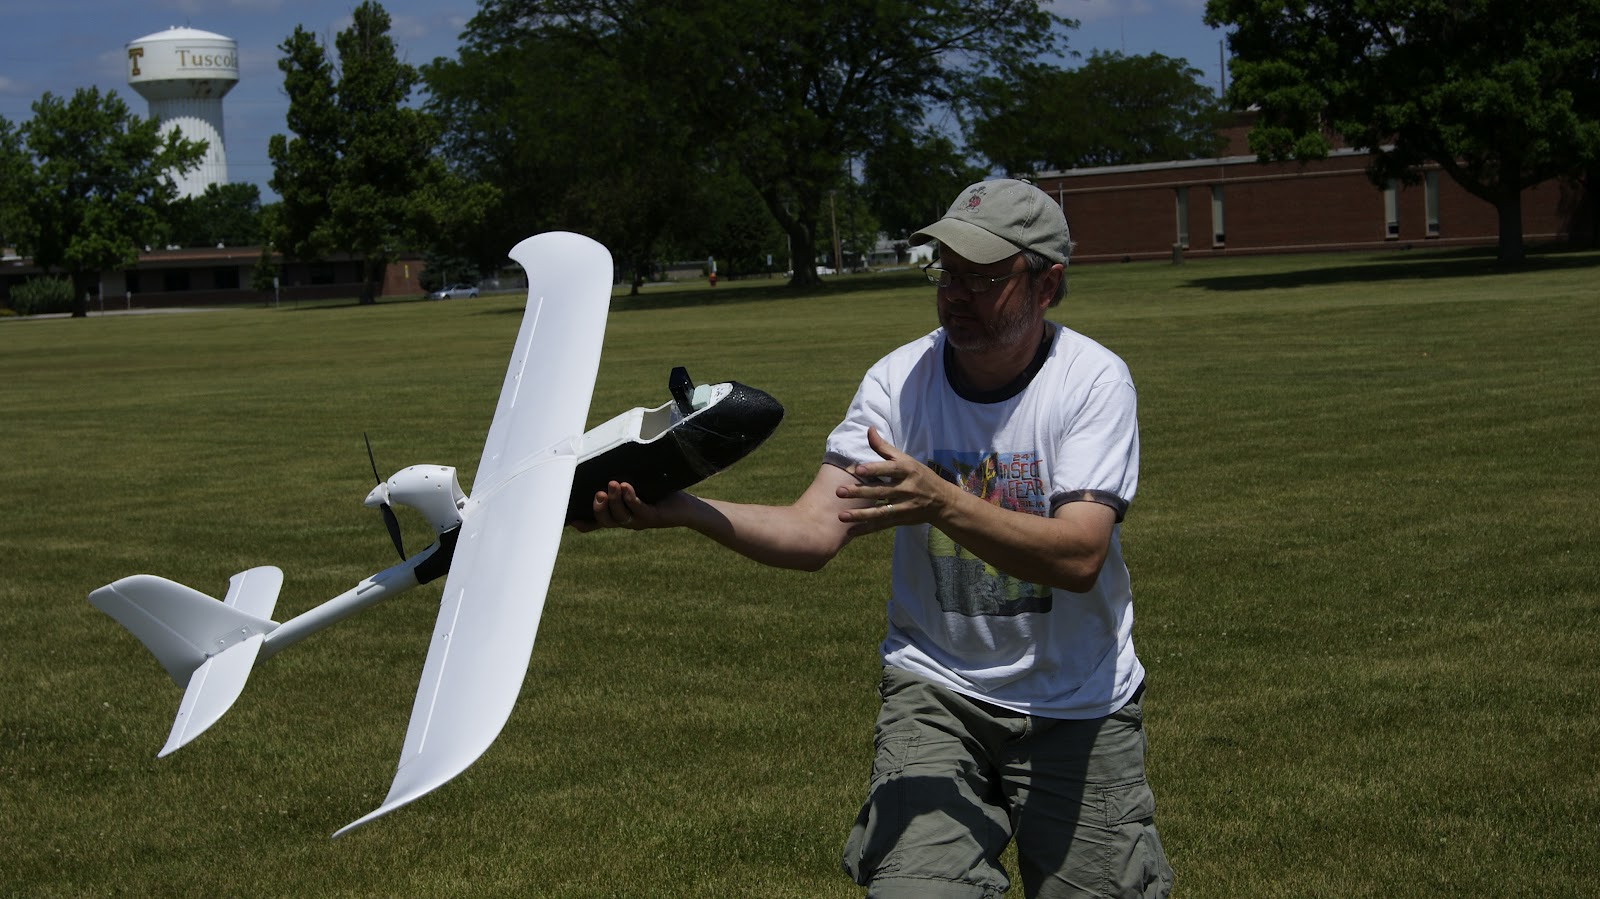 Selen and JournoDrone 2, which had a camera attached for its final  flight of the day. The camera shut off on impact, however, deleting all  of its footage. A problem with the electronics shifting in the fuselage  affecting the center of gravity could have contributed to the crash on  this flight.